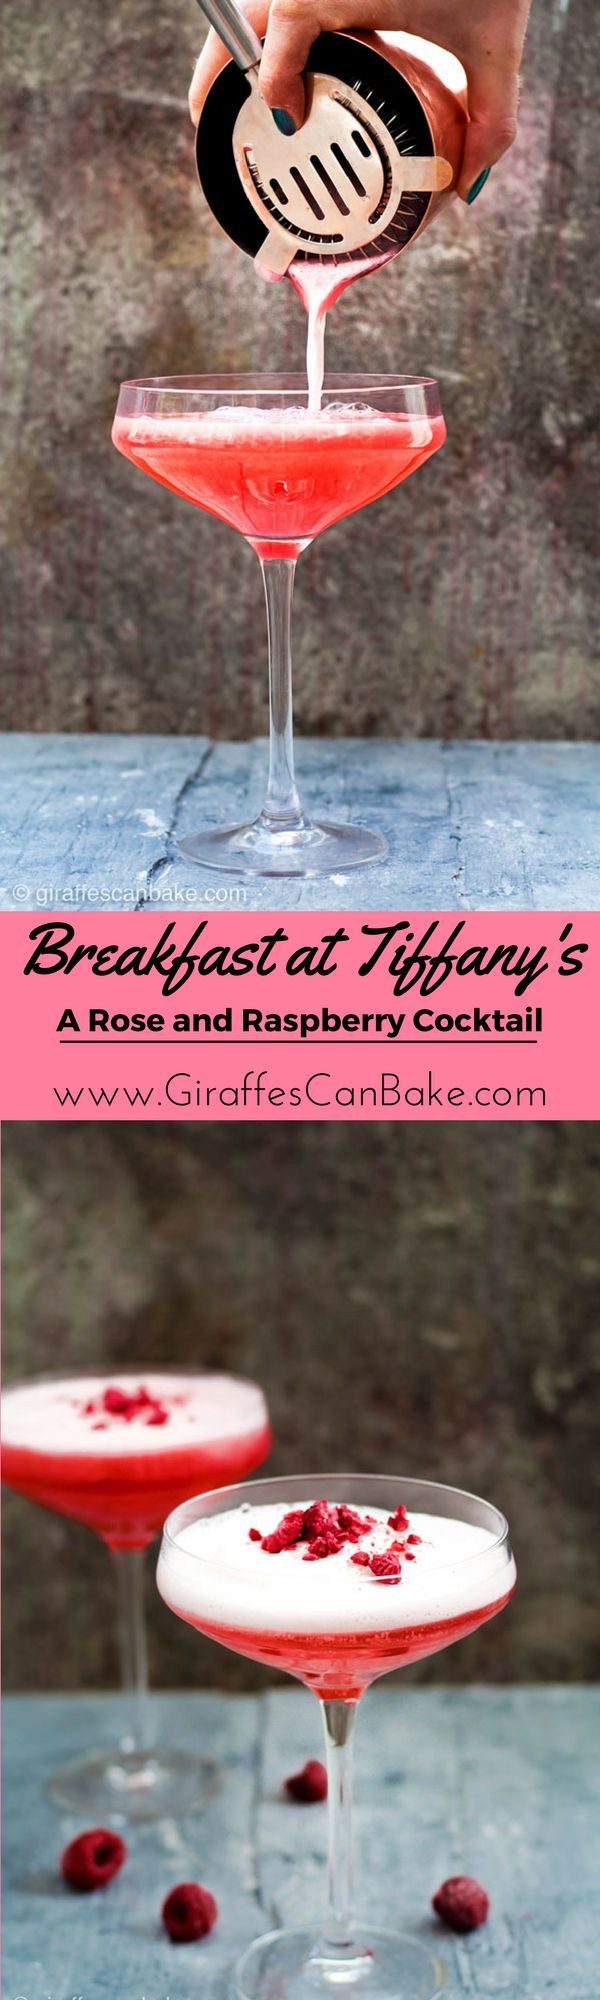 Breakfast at Tiffany's - a Rose and Raspberry Cocktail. An easy and elegant vodka cocktail that is perfect for your next girls night, baby shower, wedding shower, brunch or dinner party